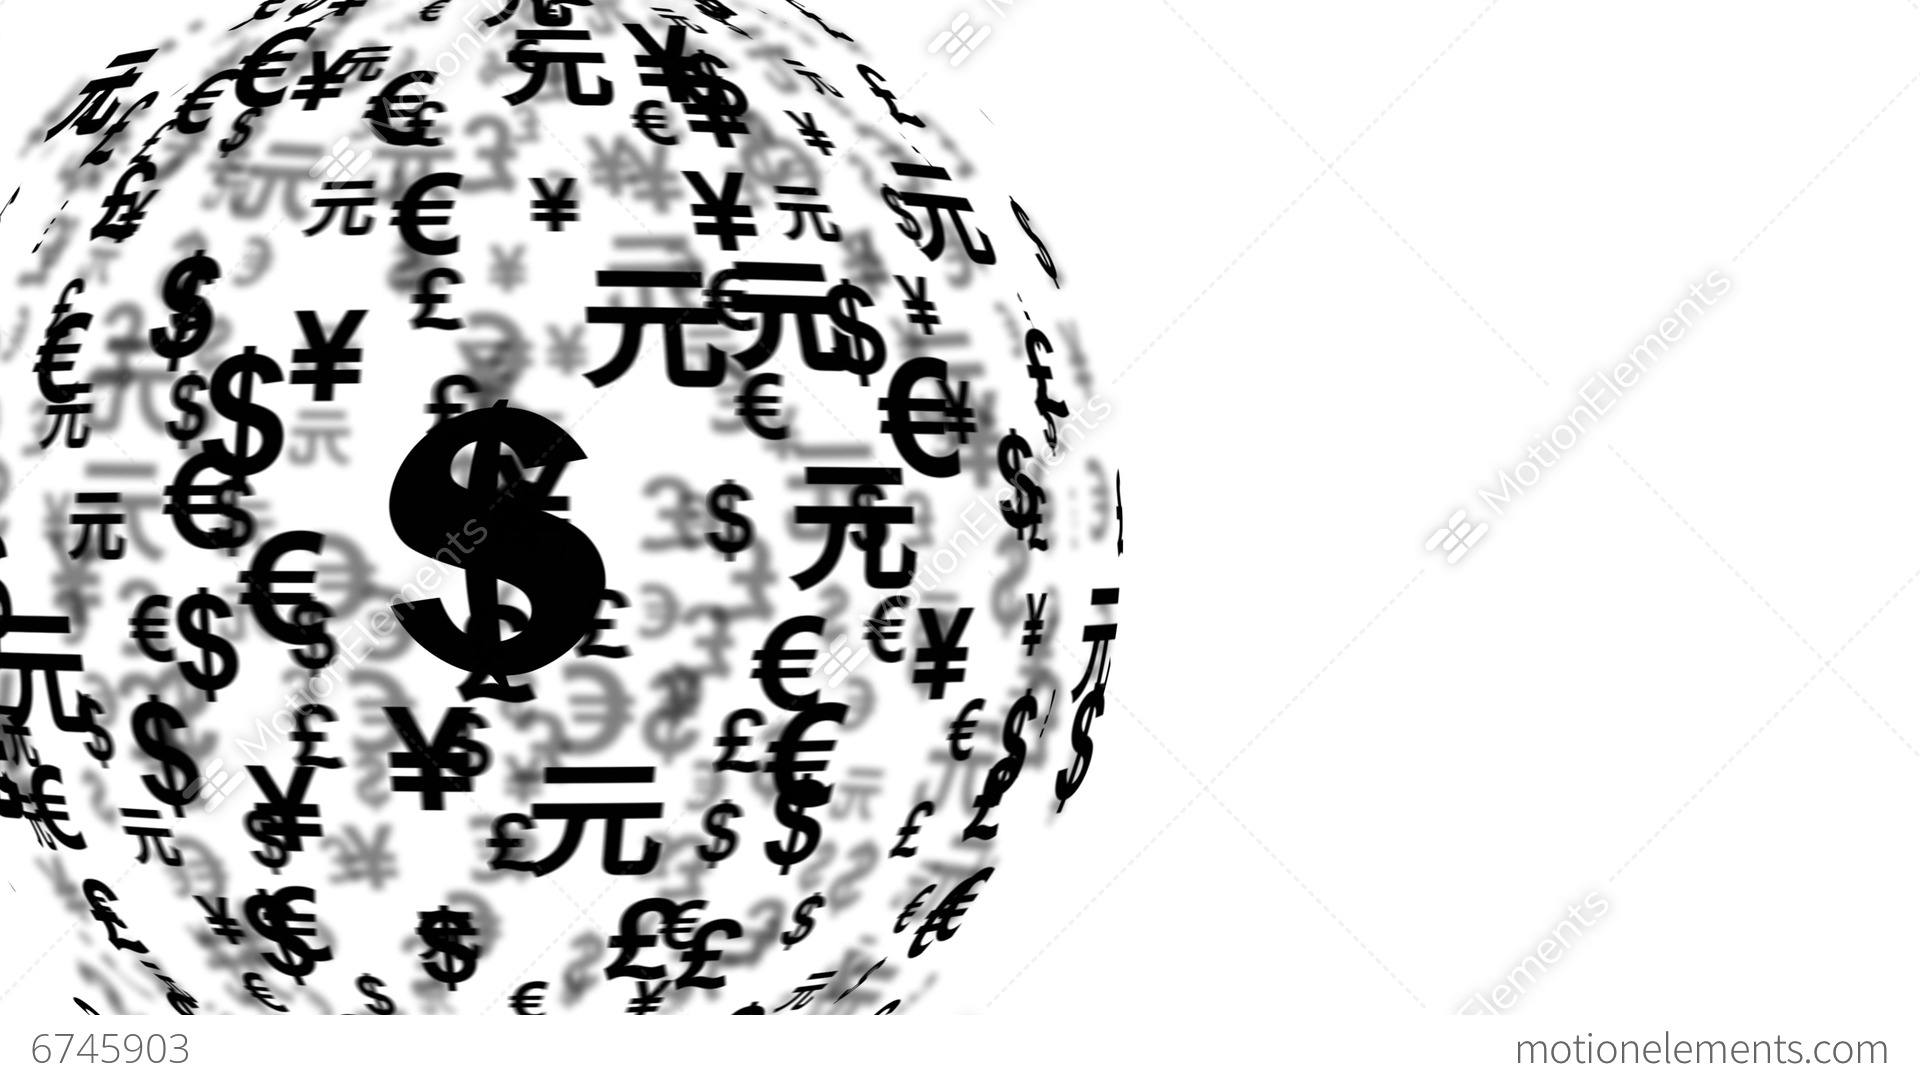 4k uhd currency symbols globe rotating 11600 stock animation 6745903 4k uhd currency symbols globe rotating 11600 stock video footage biocorpaavc Image collections